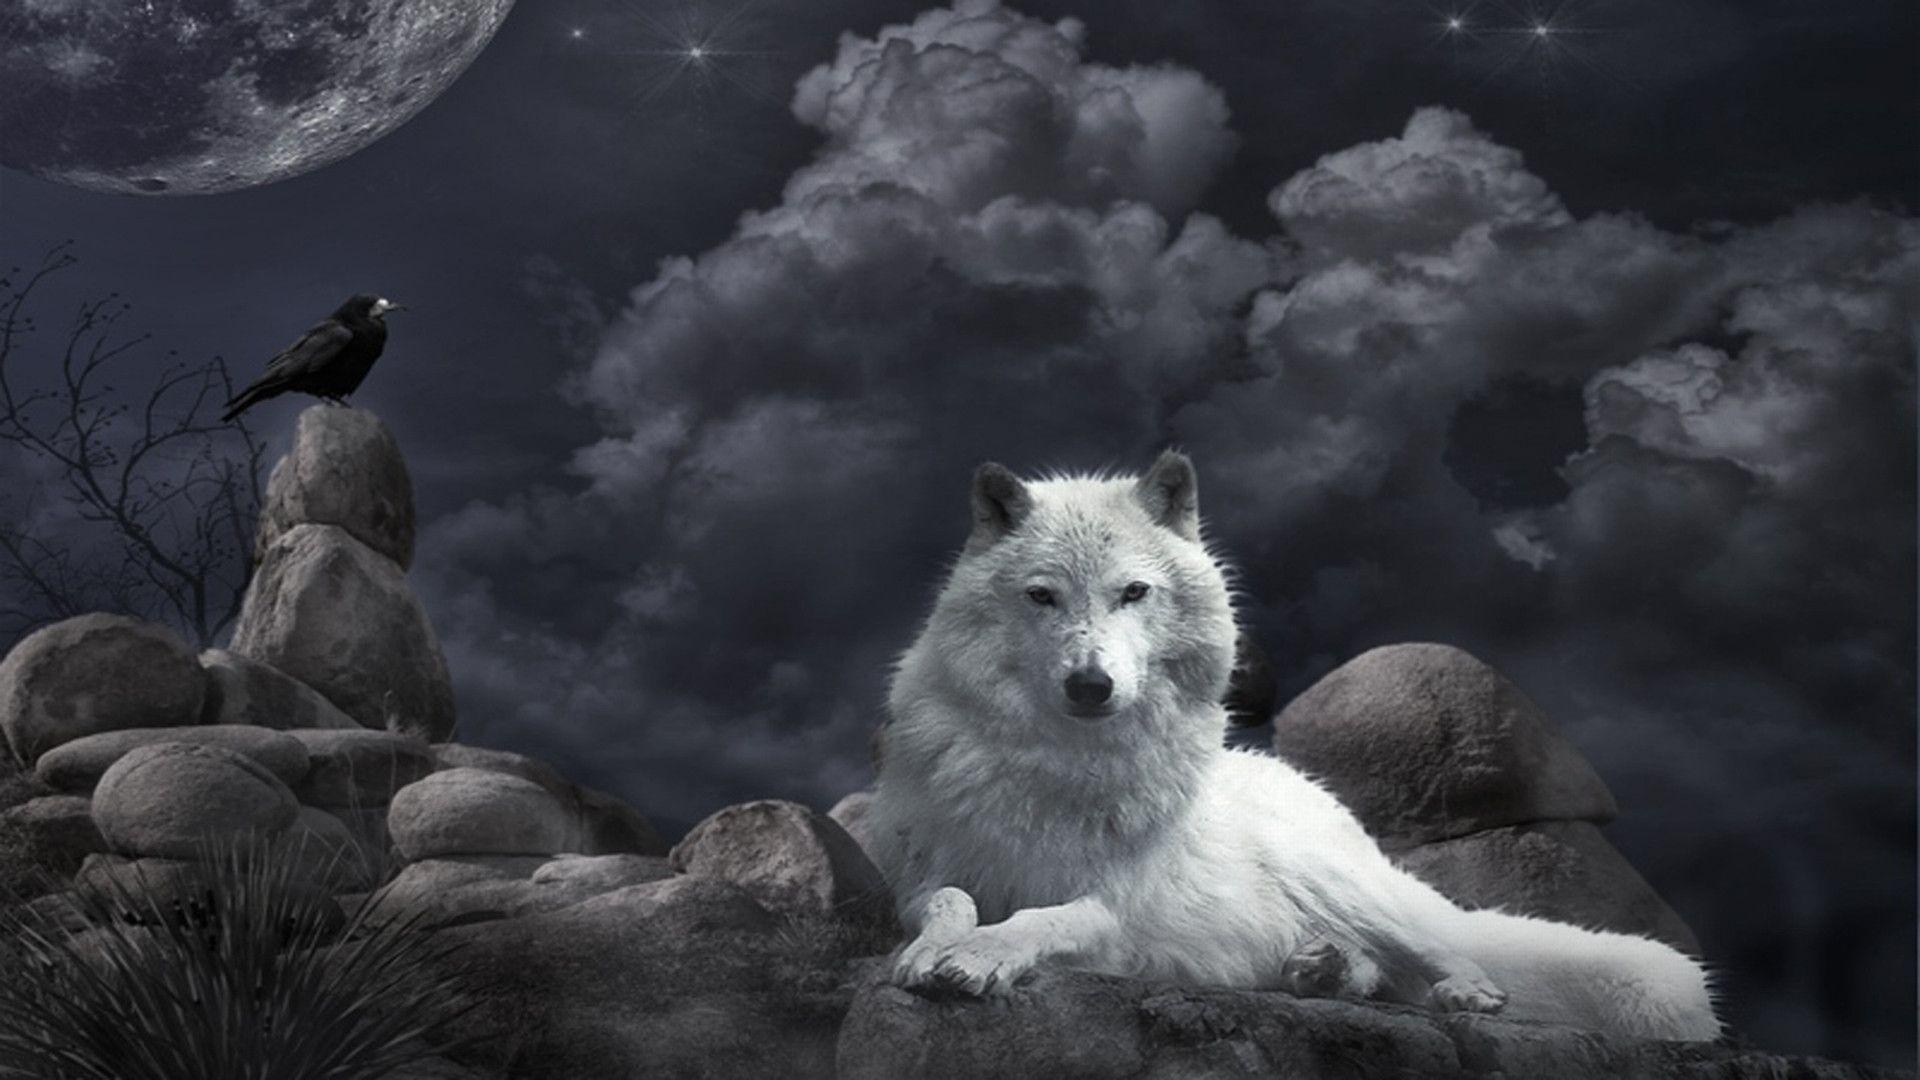 Hd wolf wallpapers wallpaper cave for Lustige wallpaper